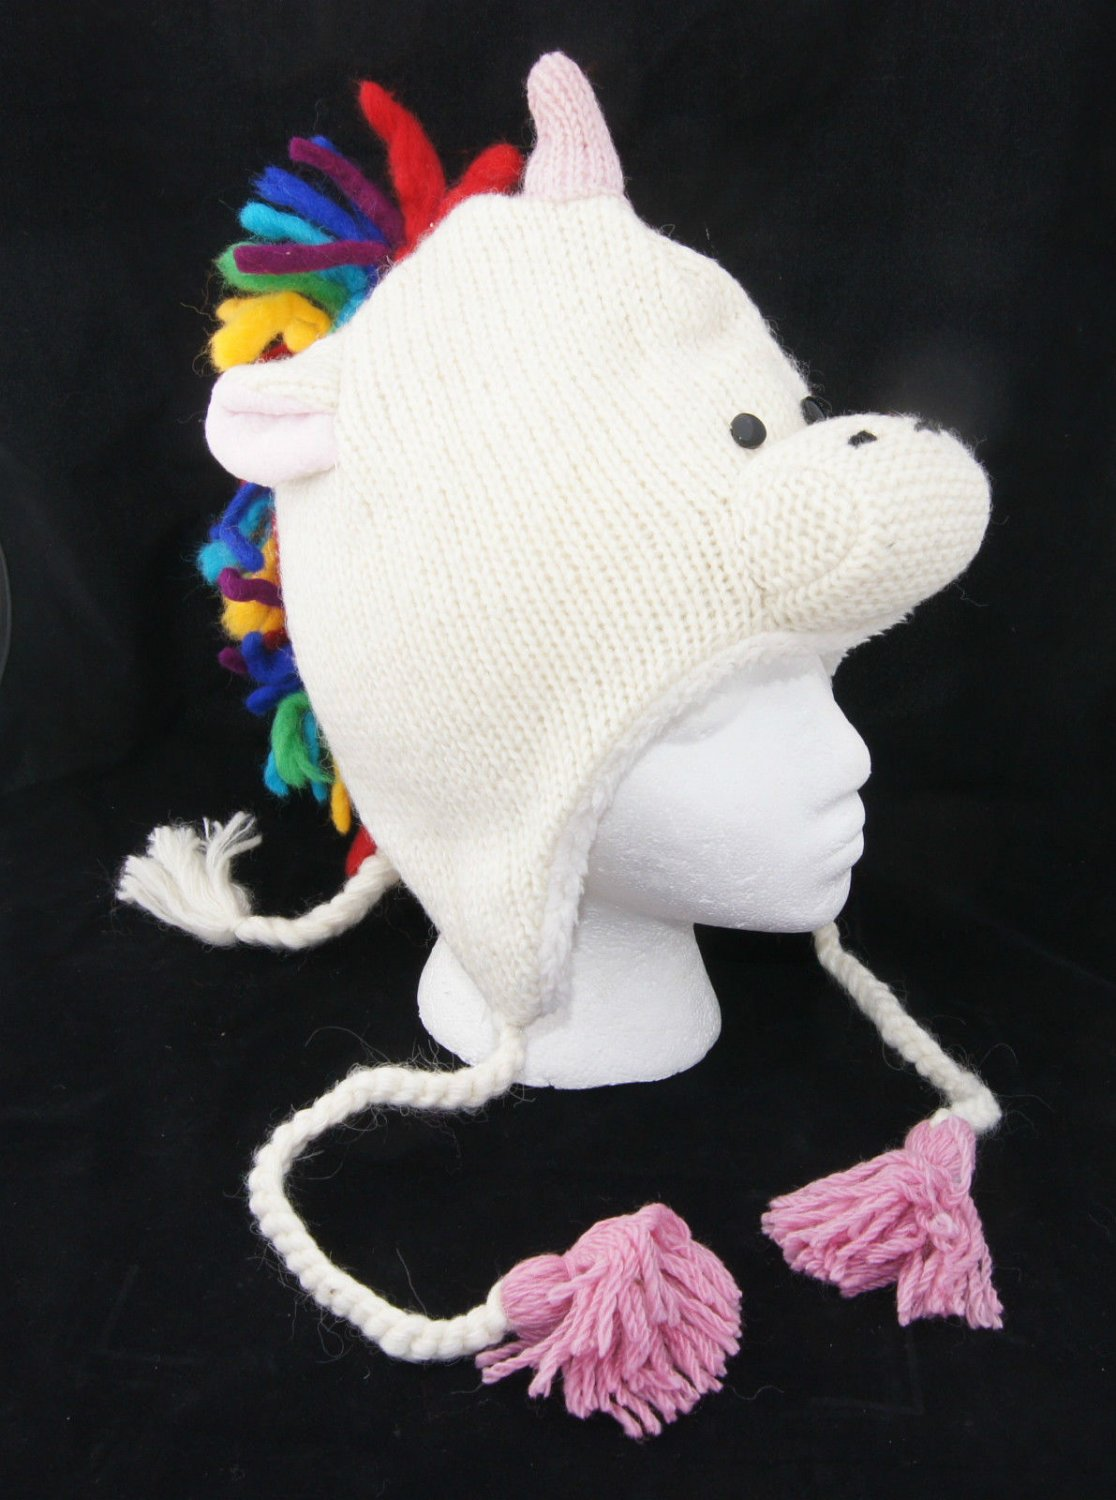 Rainbow Unicorn Hat Adult Knit Fleece Lined White Horse